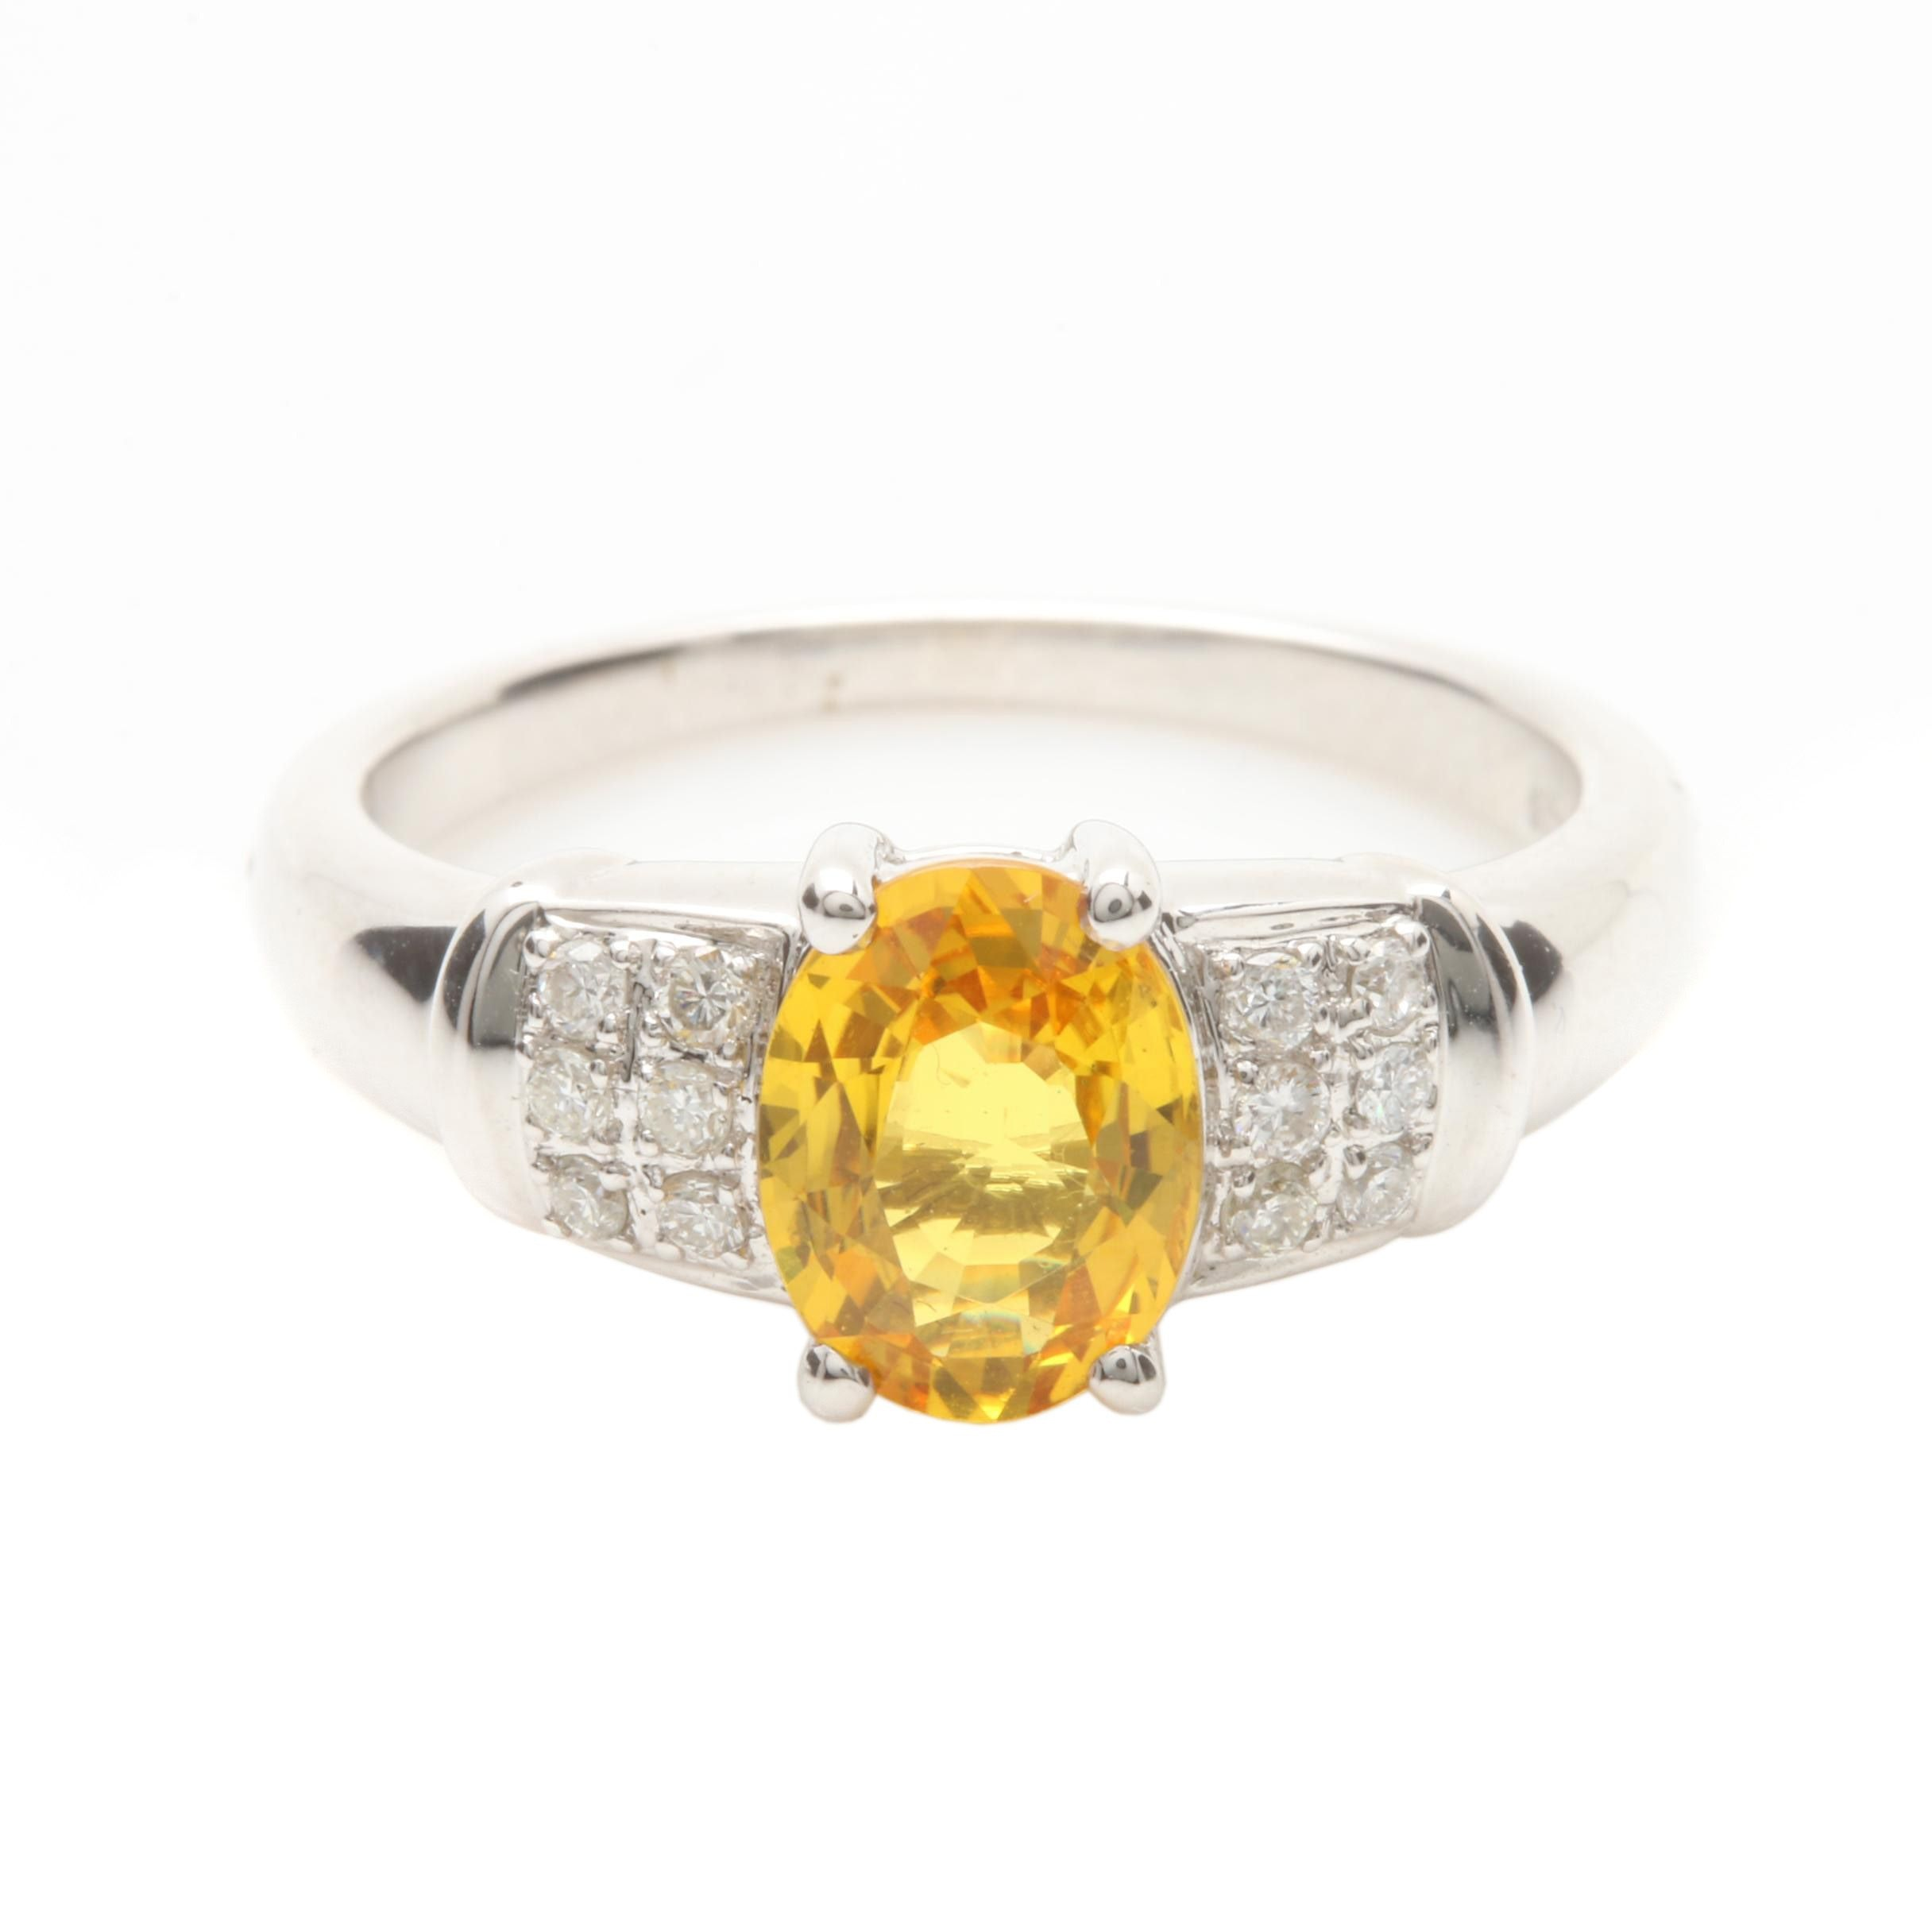 18K White Gold 1.28 CT Yellow Sapphire and Diamond Ring